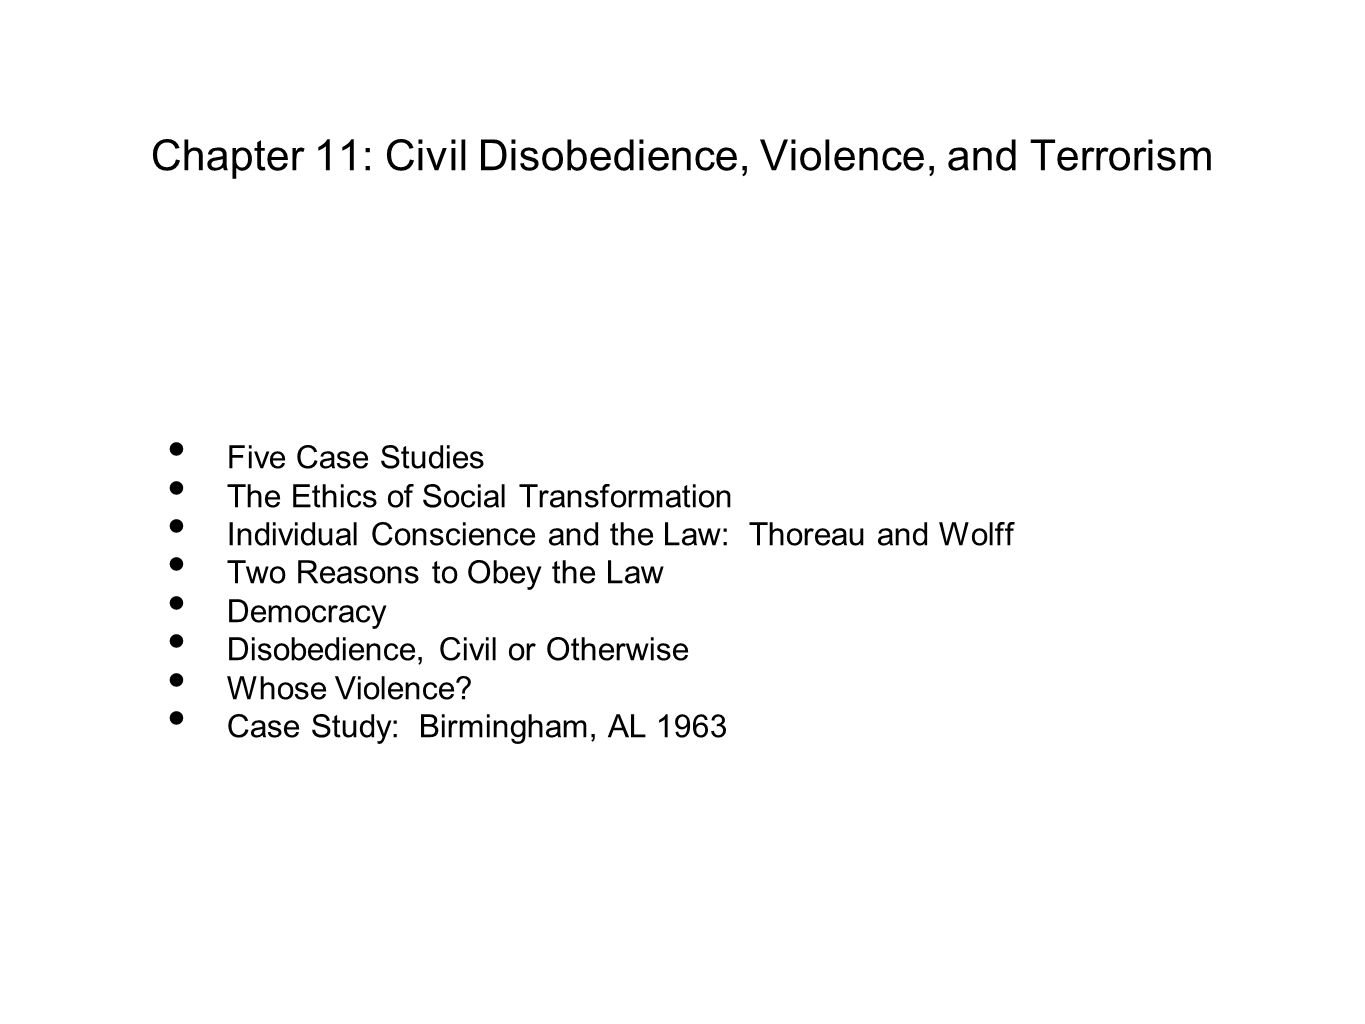 Chapter 11: Civil Disobedience, Violence, and Terrorism